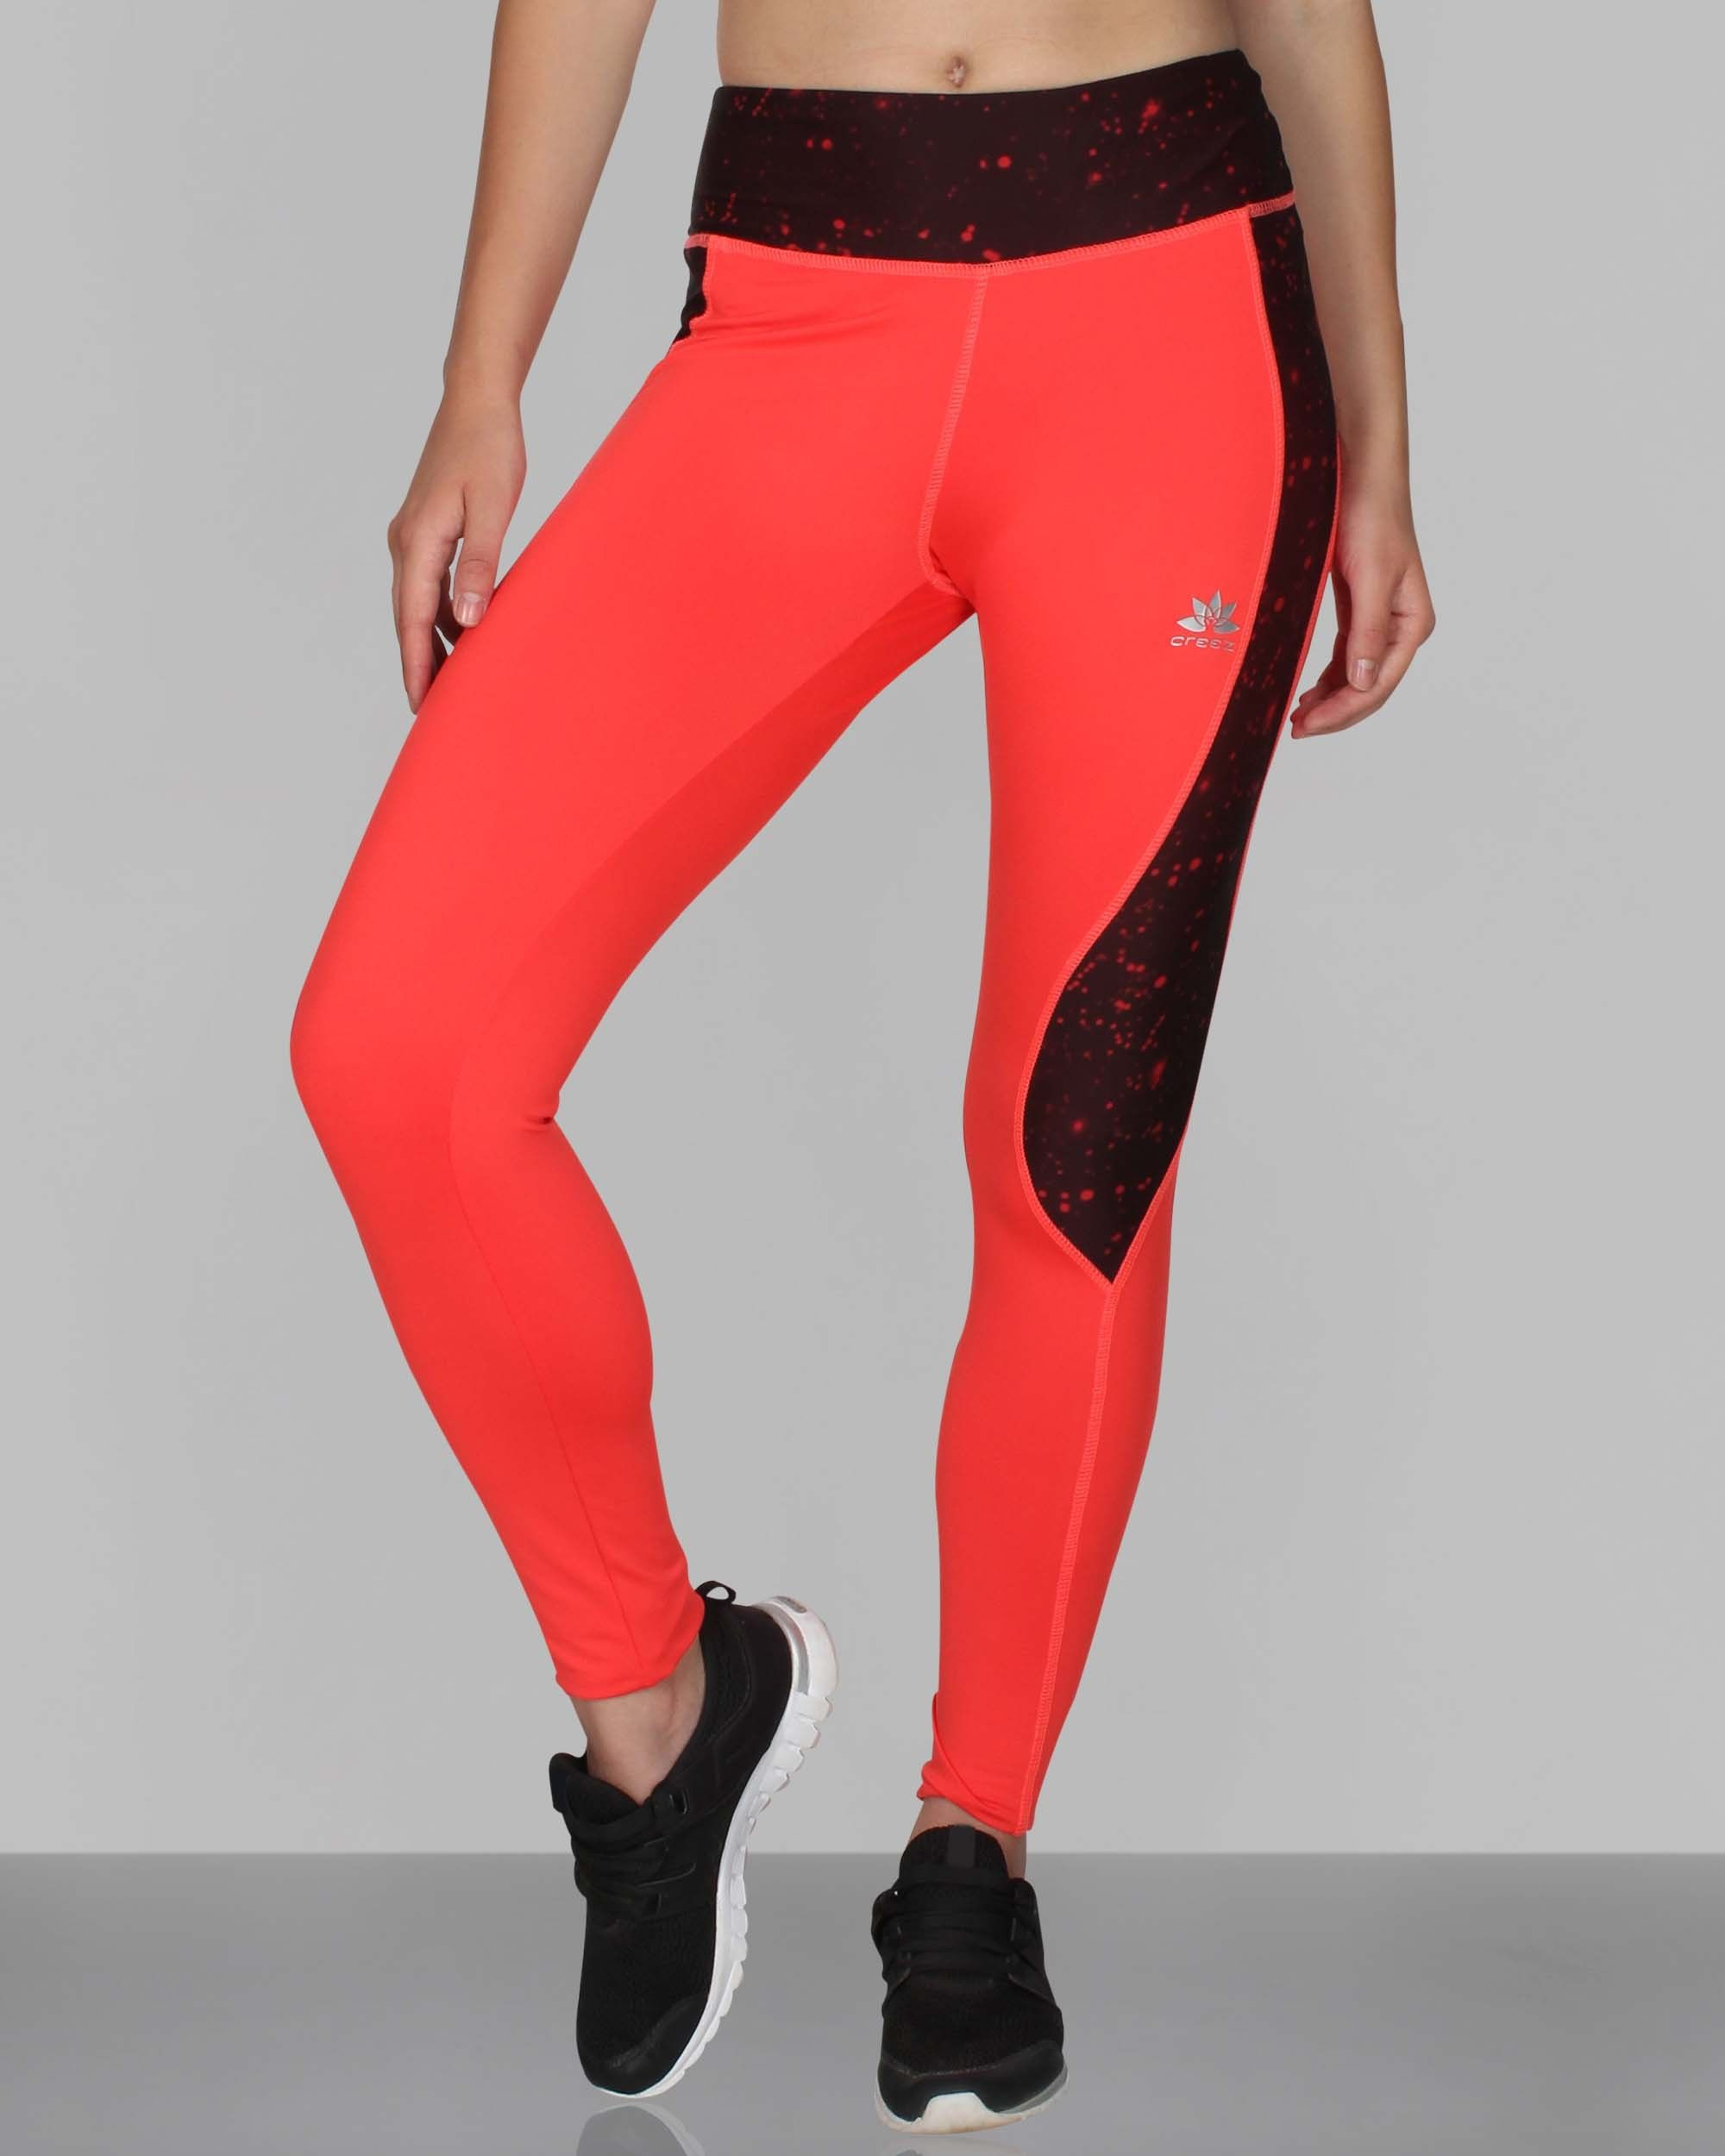 441b66f7eec3d Women's Tights and Leggings India | Creez | Leggings, Tight leggings ...